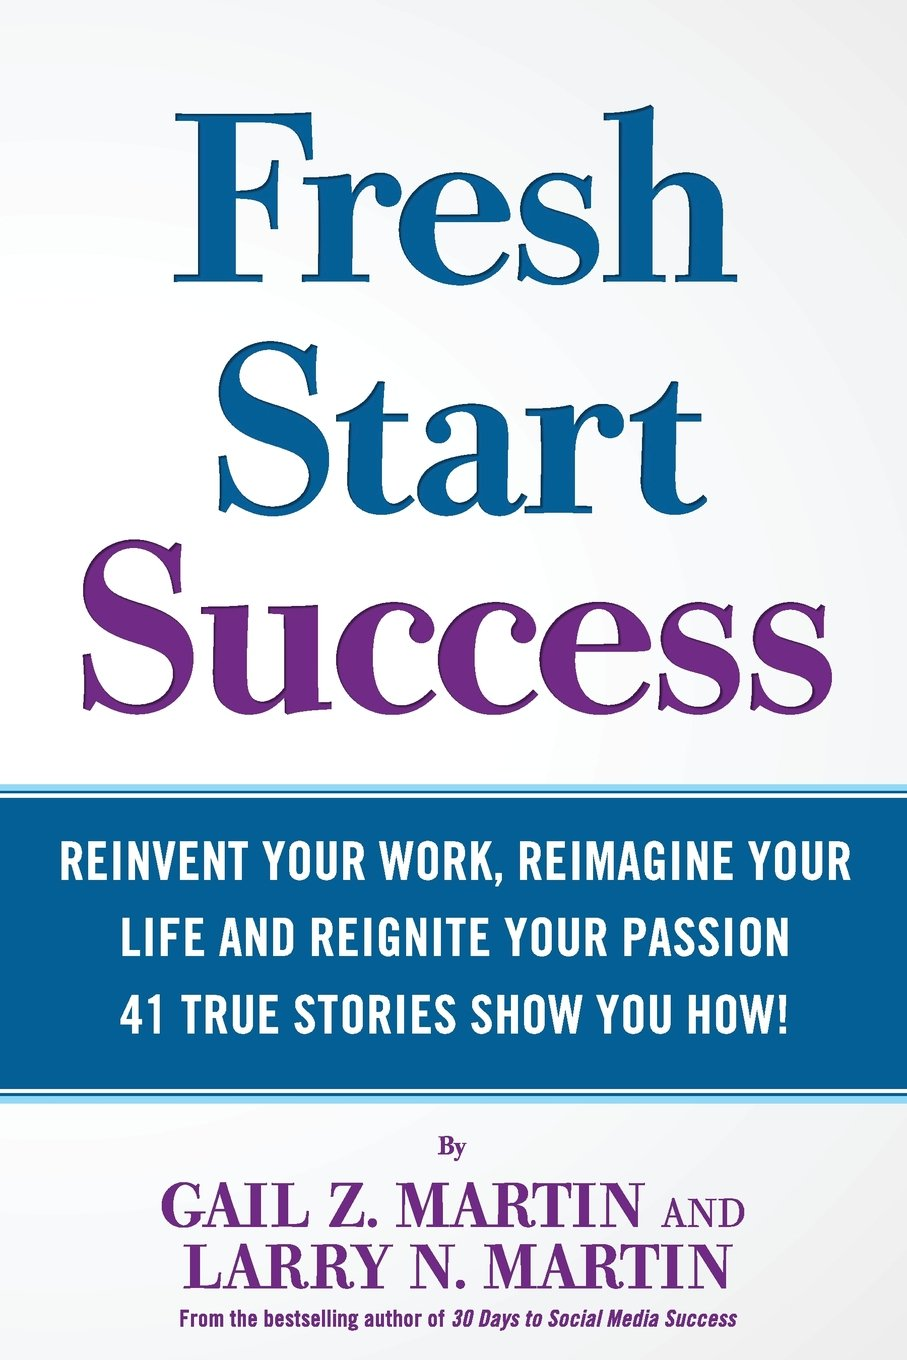 Fresh Start Success Reinvent Reimagine